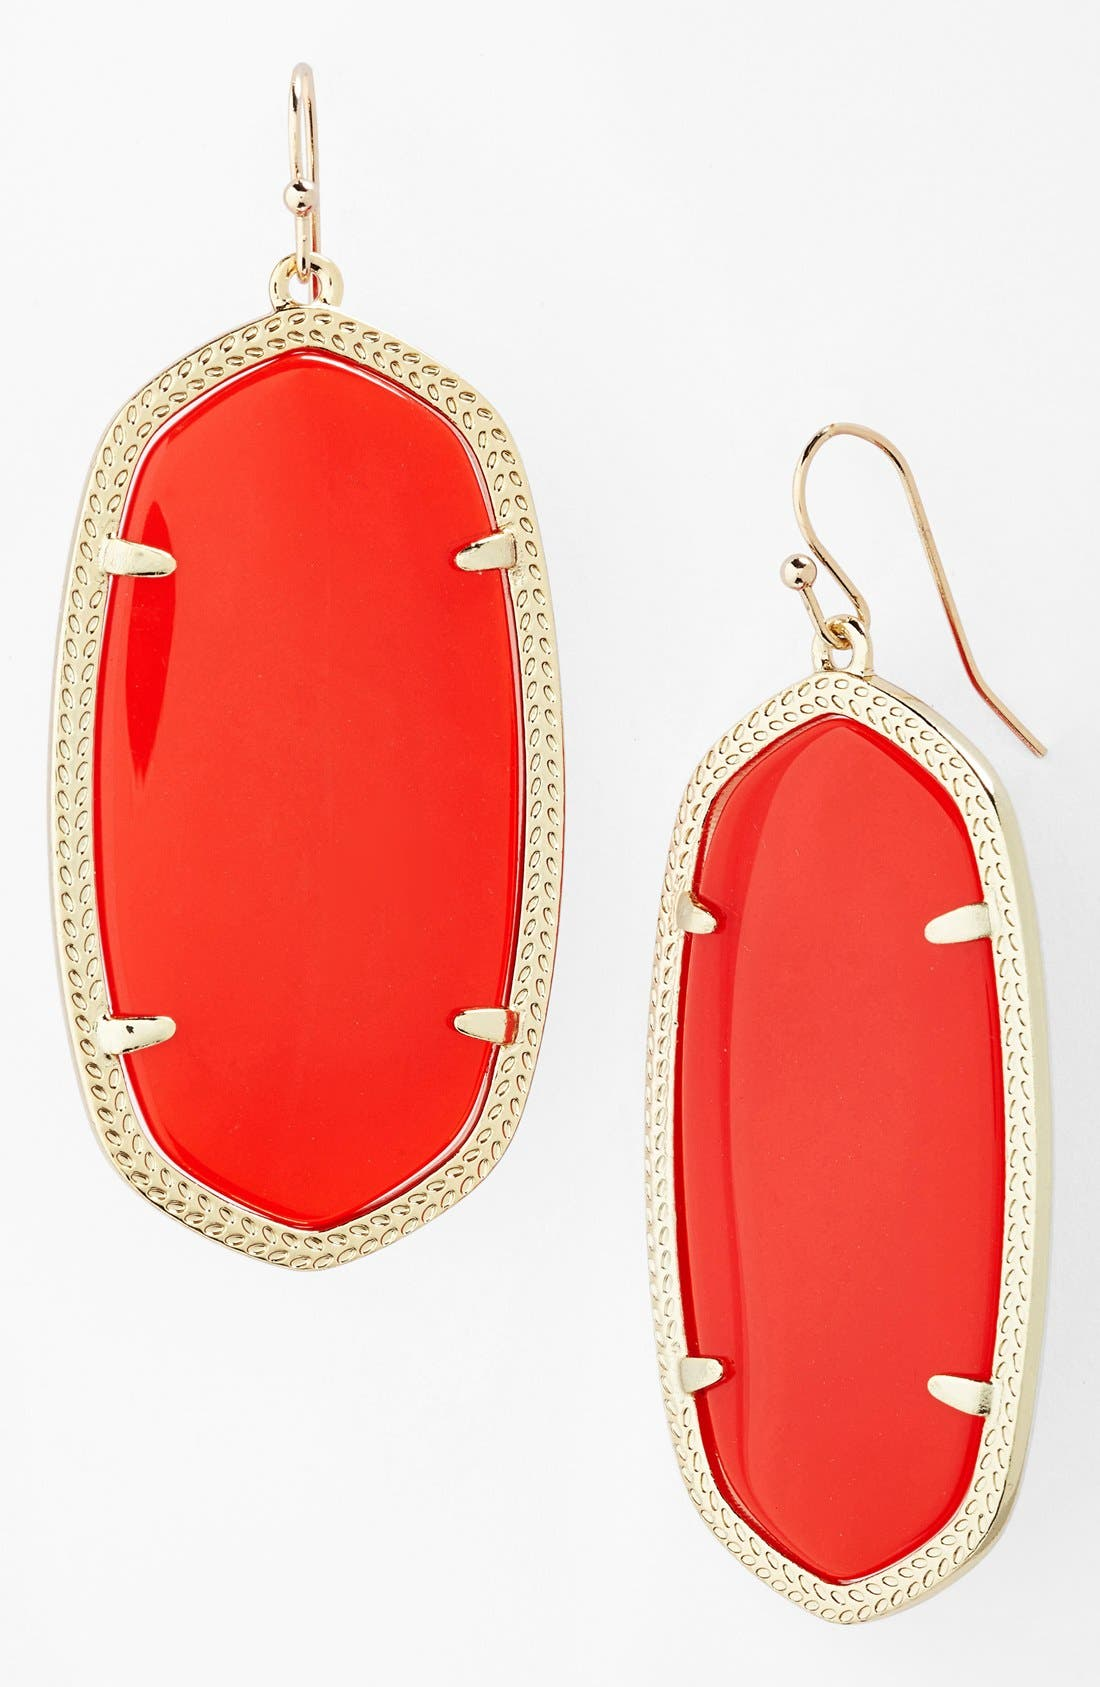 Danielle - Large Oval Statement Earrings,                             Main thumbnail 22, color,